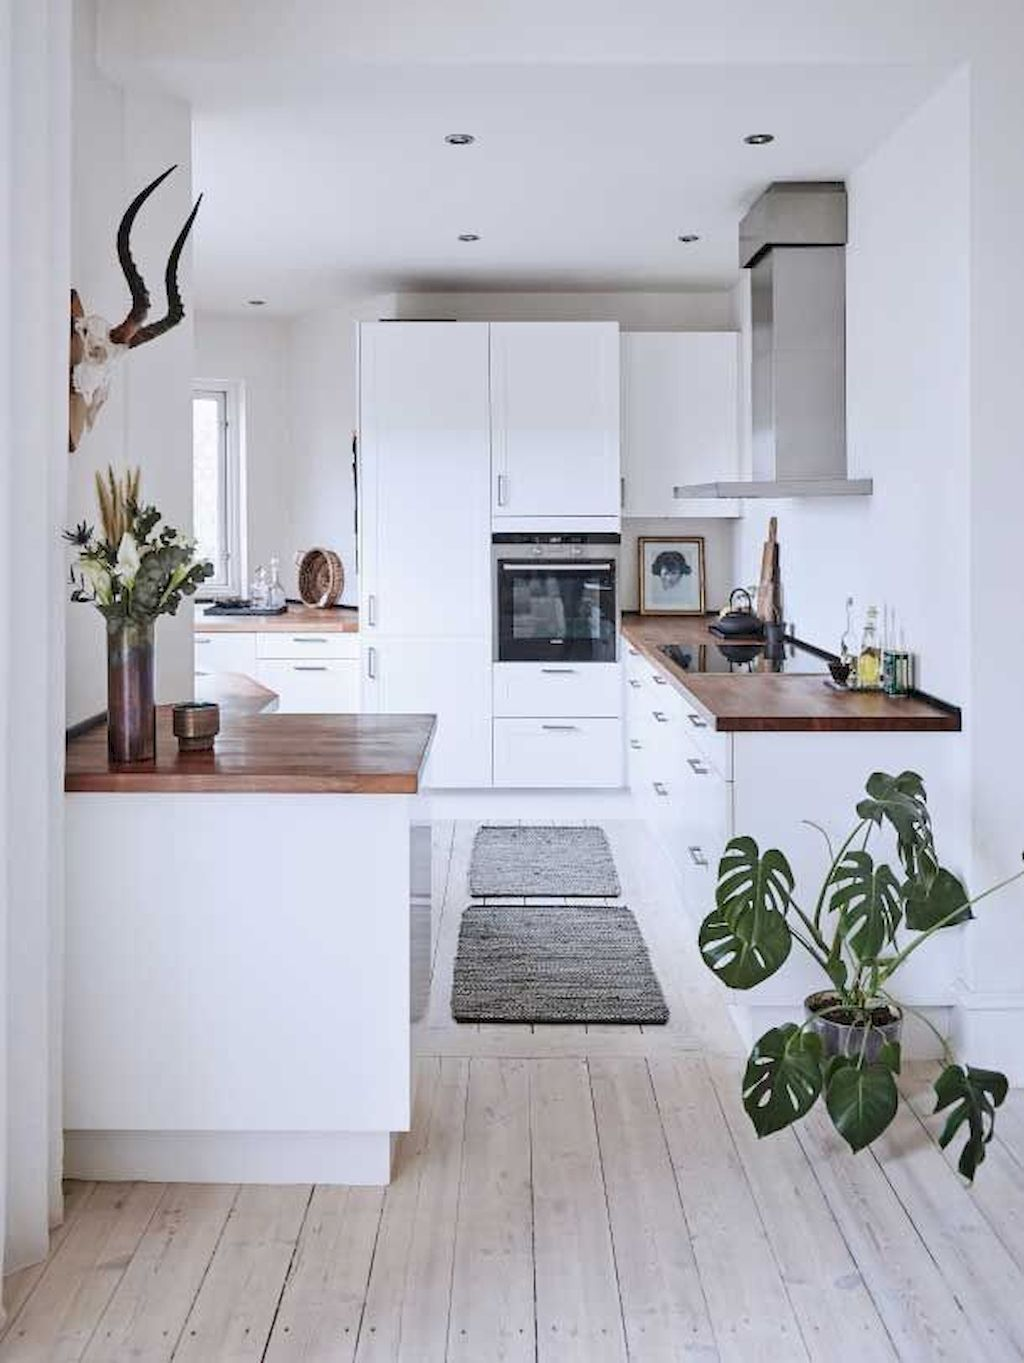 100 Small Scandinavian Kitchen Design Https Carrebianhome Com 100 Small Scandinavian Kit Kitchen Remodel Small Farmhouse Kitchen Design Kitchen Design Small